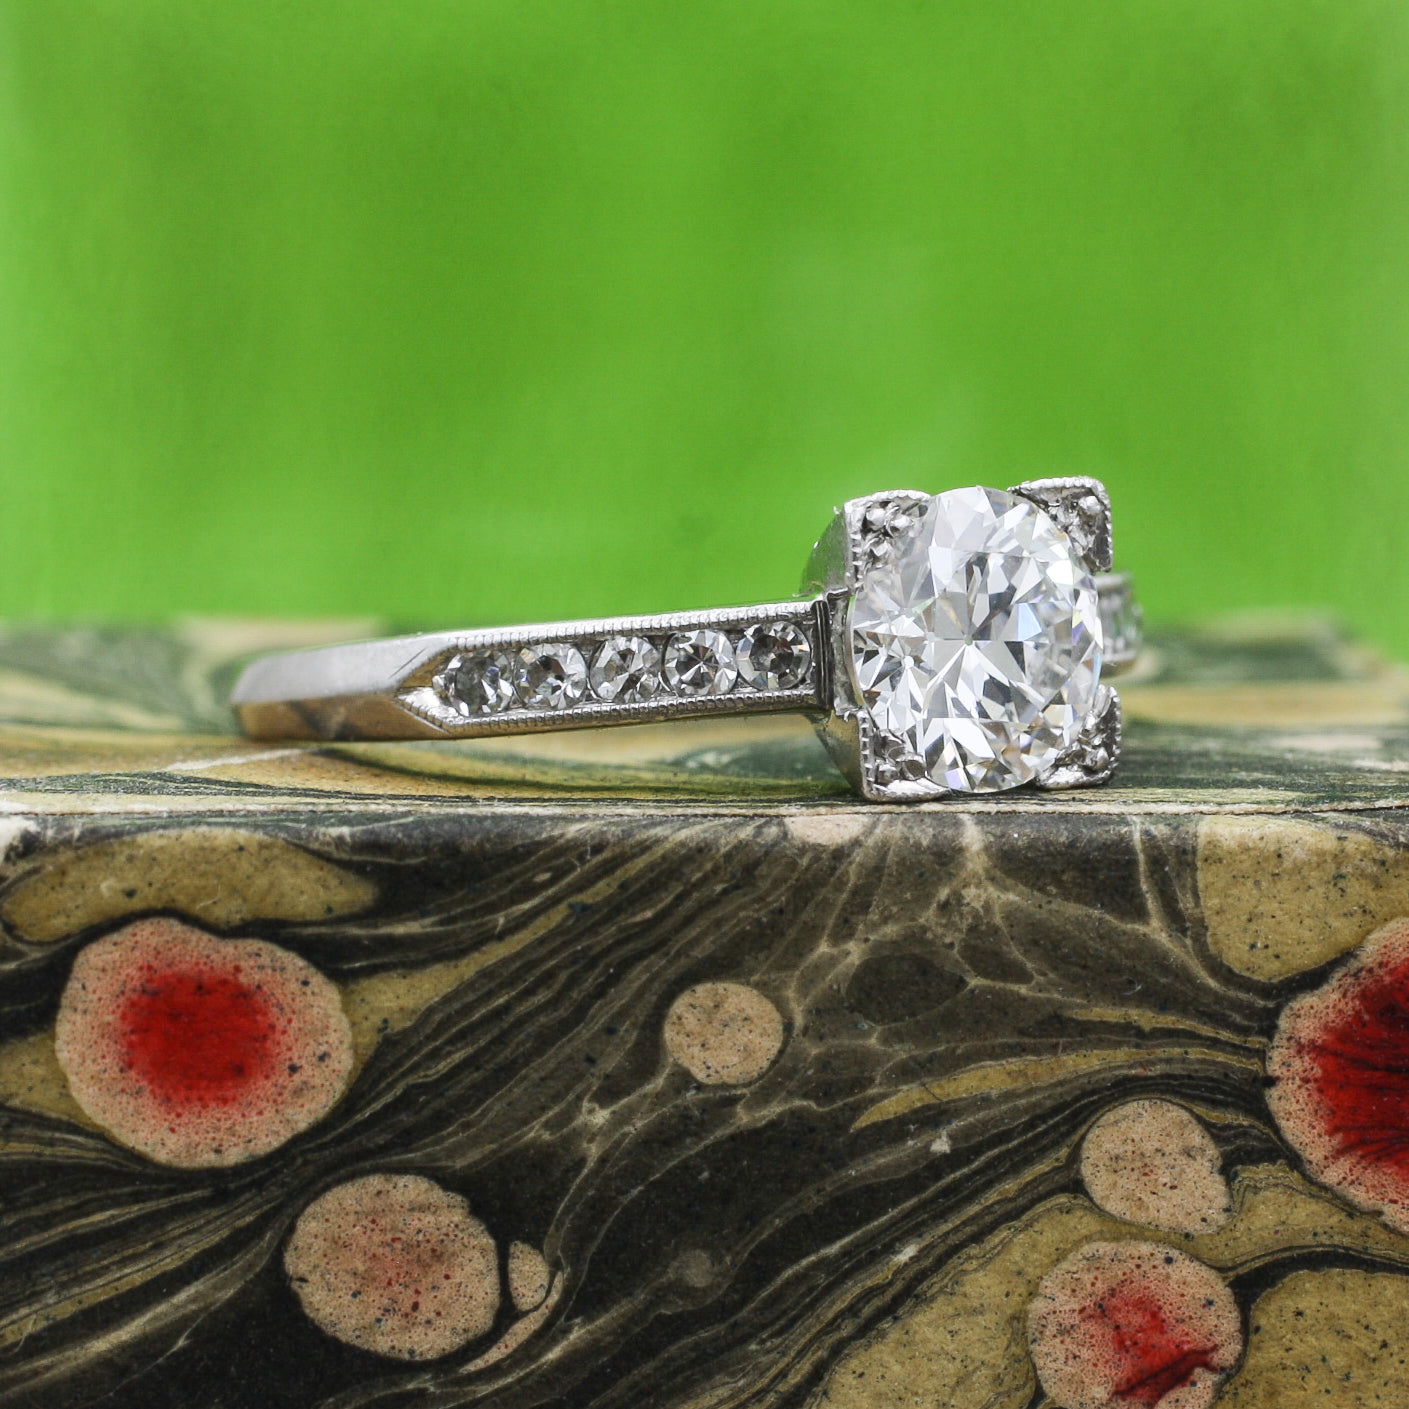 1931 .90 Carat Transitional Cut Diamond Ring